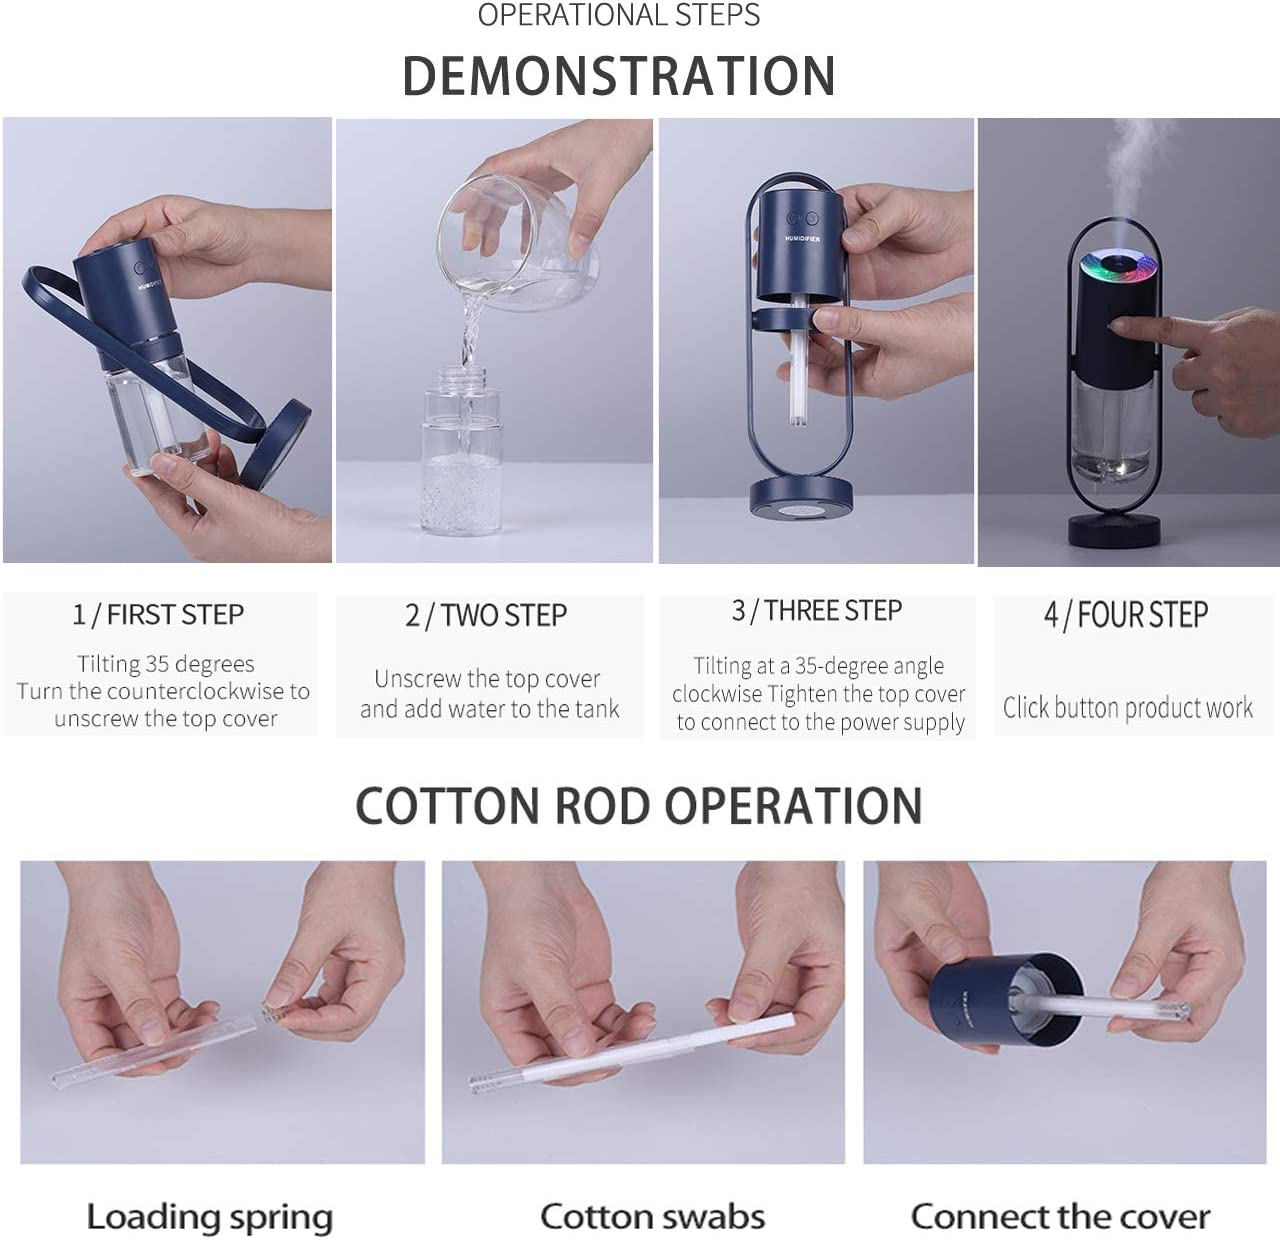 cool mist humidifier-portable mini humidifier with led lights,usb portable air humidifier Ultra-Quiet, Suitable for Babies, Kids, Indoor, Bedroom, Office, Car, Travel White